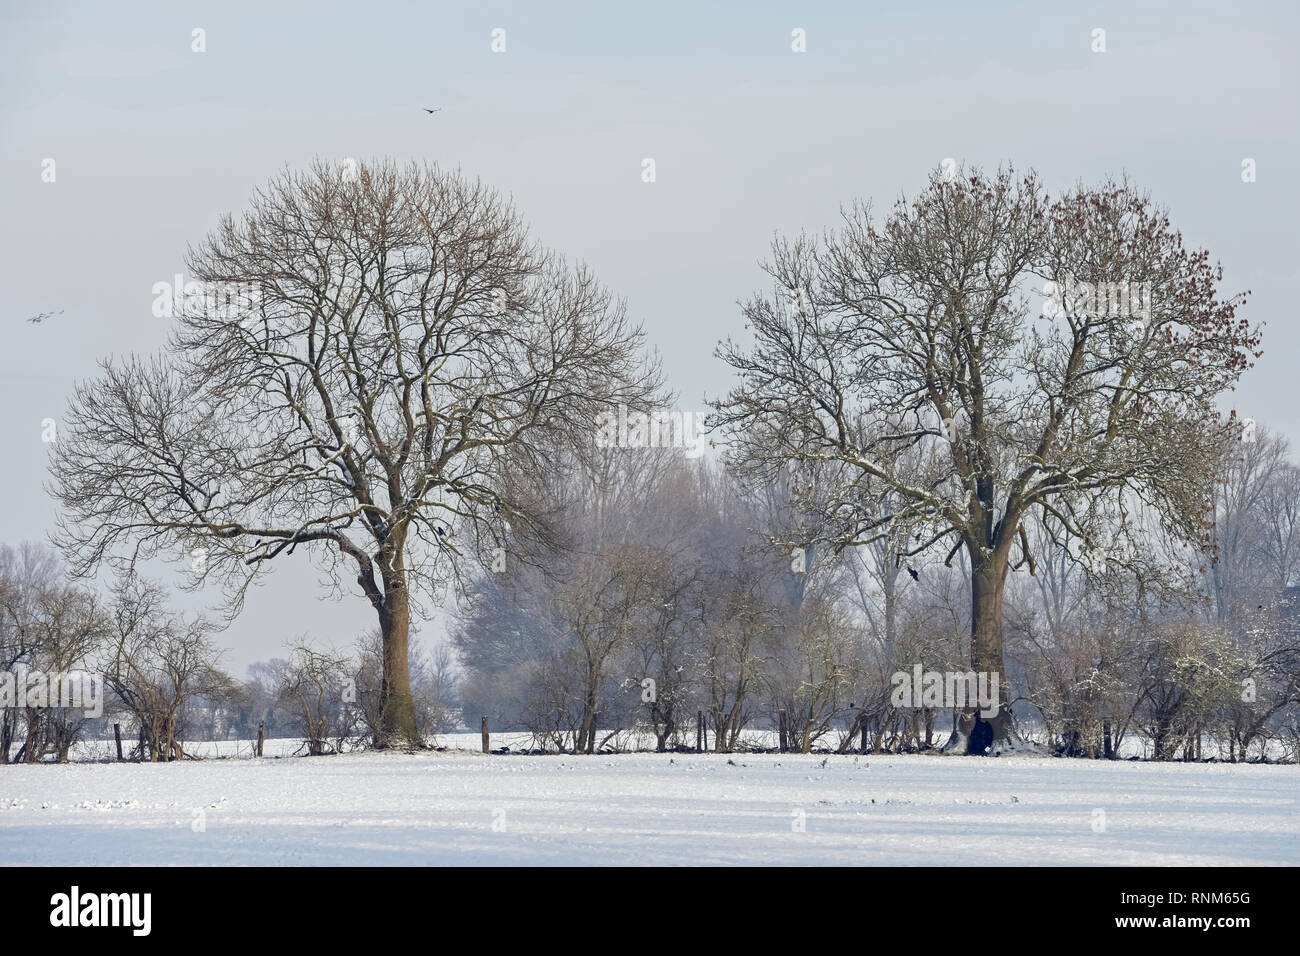 Row of old trees and hedgerow bushes on a frosty winter morning in rural environment, typical view in Lower Rhine region, North Rhine Westfalia, Germa - Stock Image